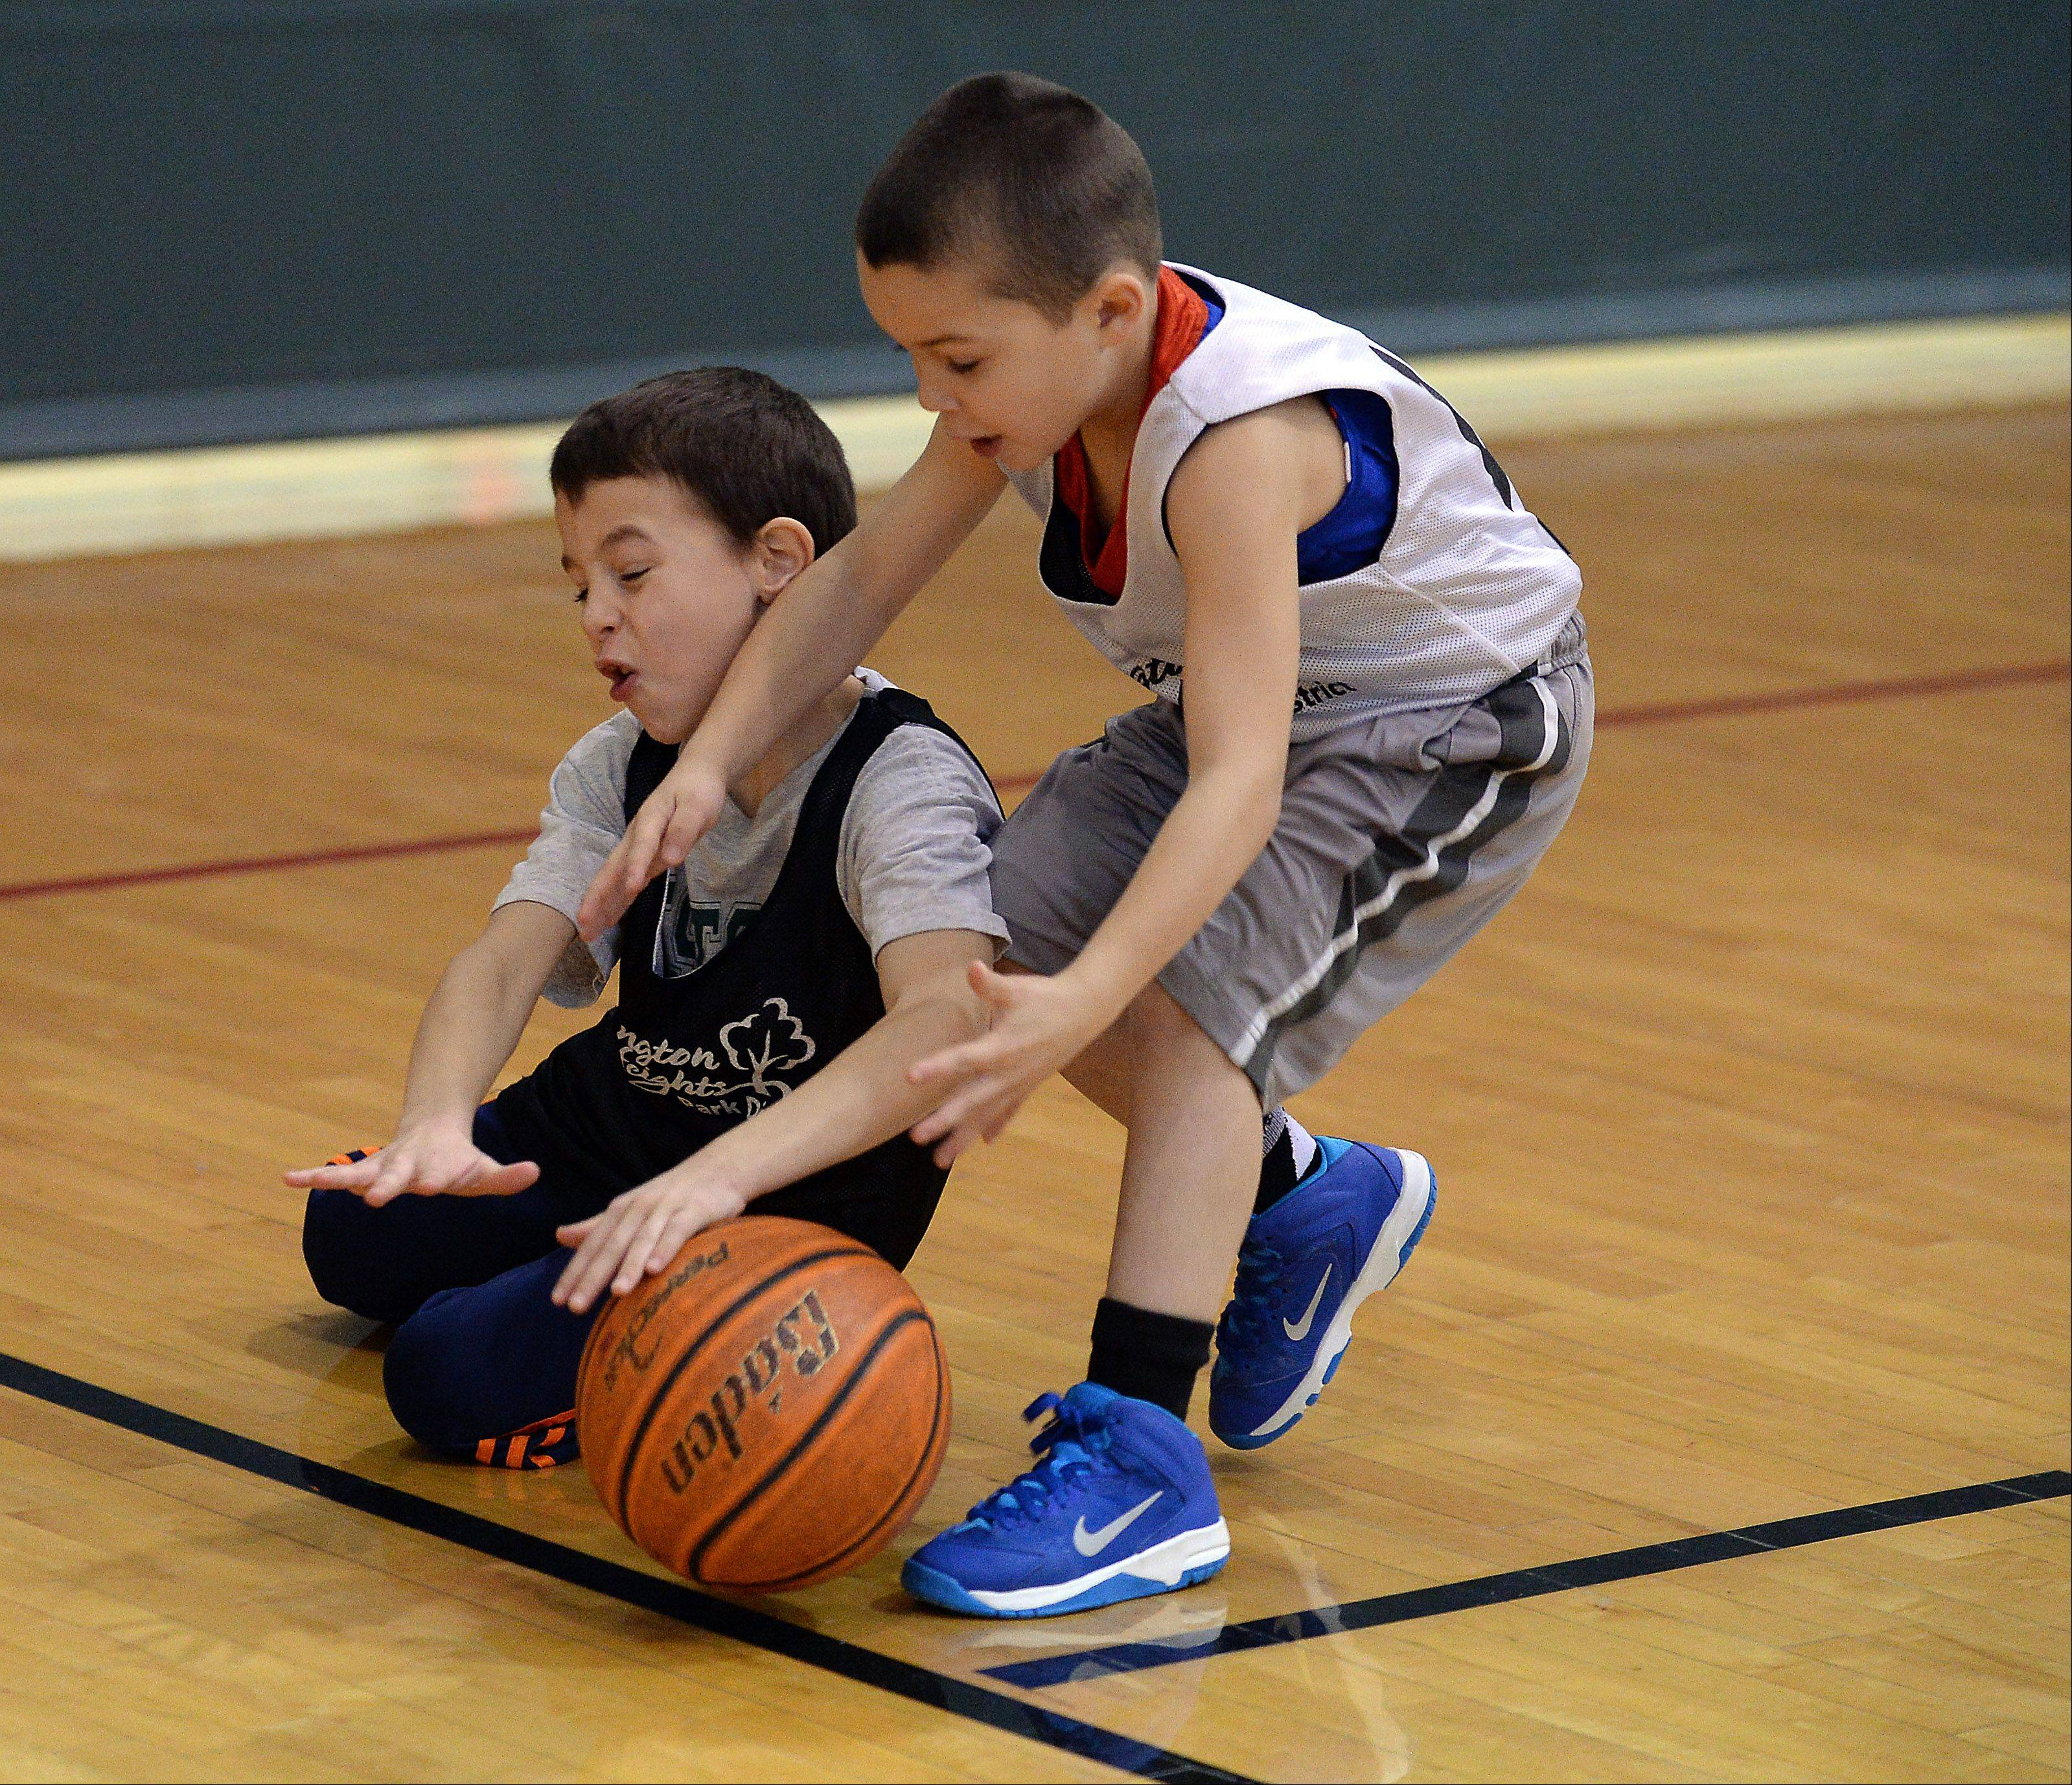 Cole Repak, 7, of the team the Lightning Boys, left, chases down a loose ball with Reid Olson, 6, of the Bulls team, during the Arlington Heights Park District 3 on 3 basketball tournament played at Pioneer Park on Saturday.